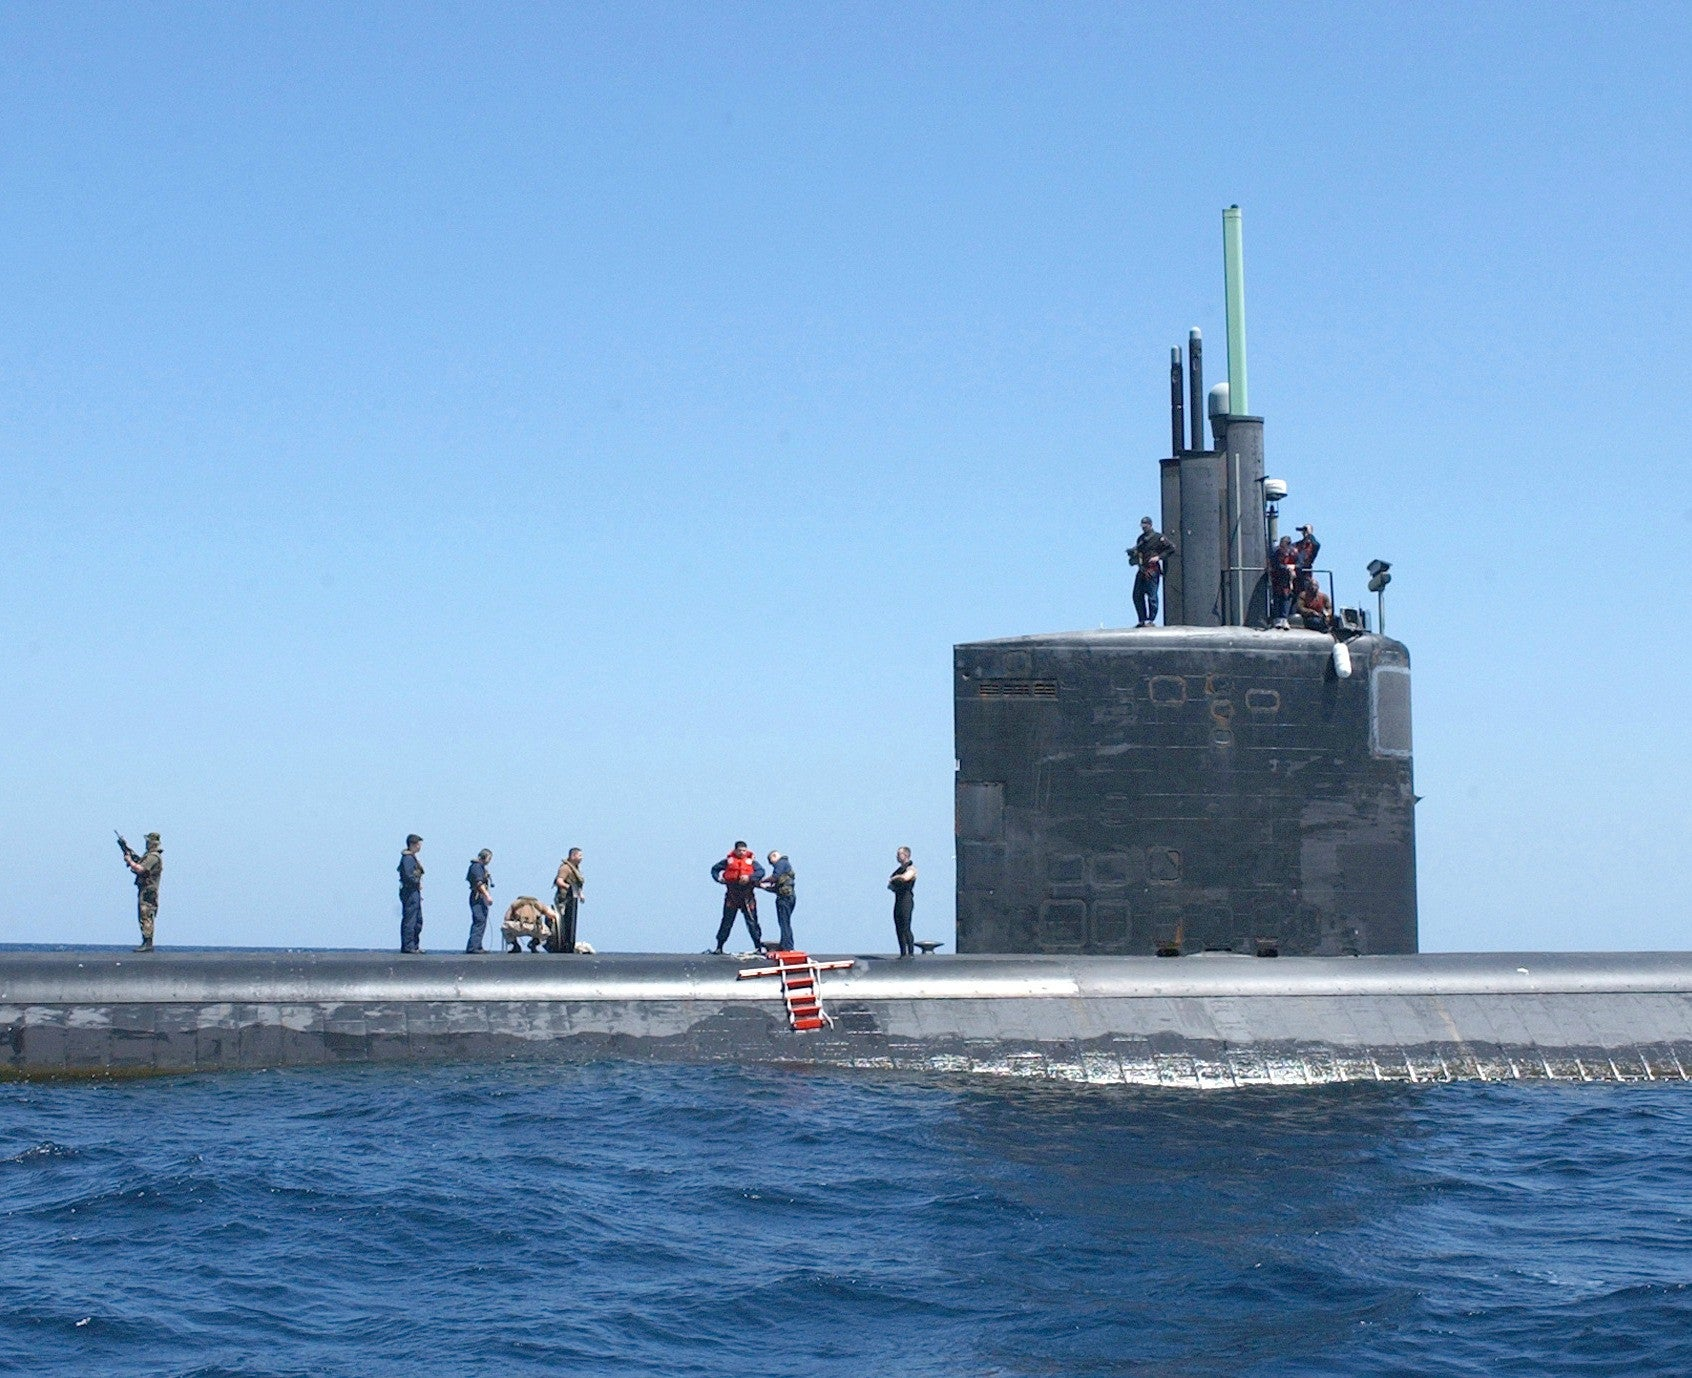 "USS Toledo SSN-769 Central Command Area of Responsibility (Mar. 27, 2003) - 8 x 10"" Photograph"